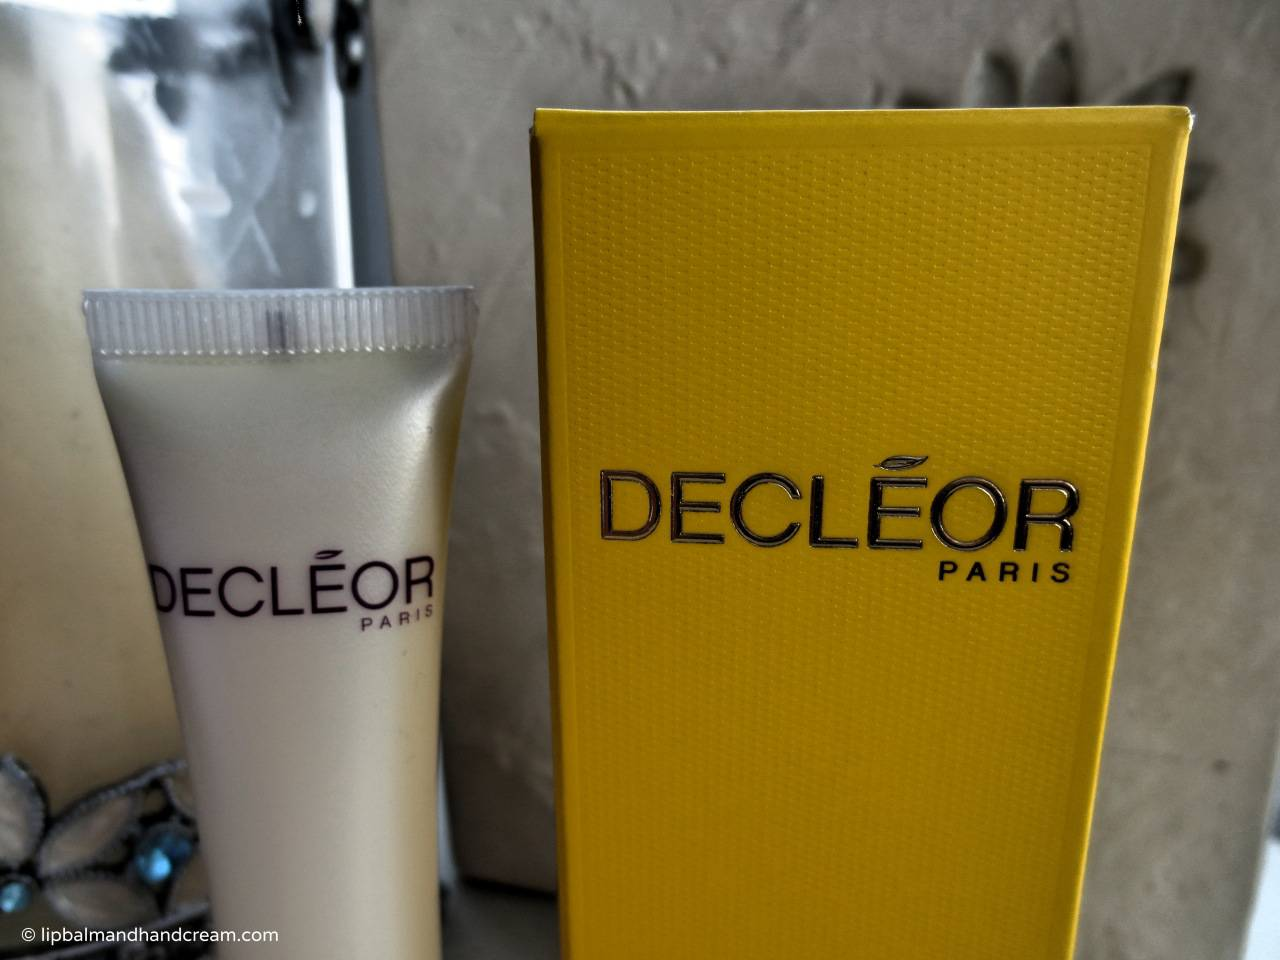 Decléor aroma lisse 2-In-1 dark circle & eye wrinkle eraser